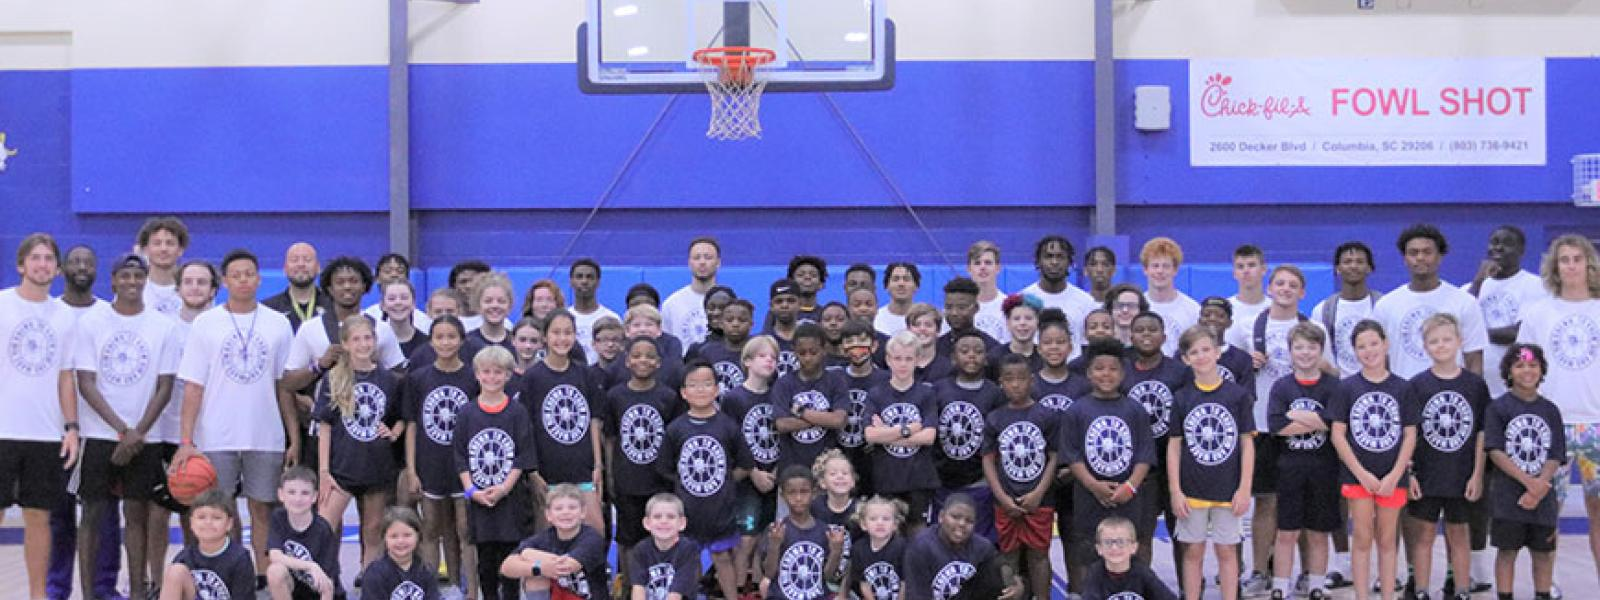 CIU basketball campers, players and coaches